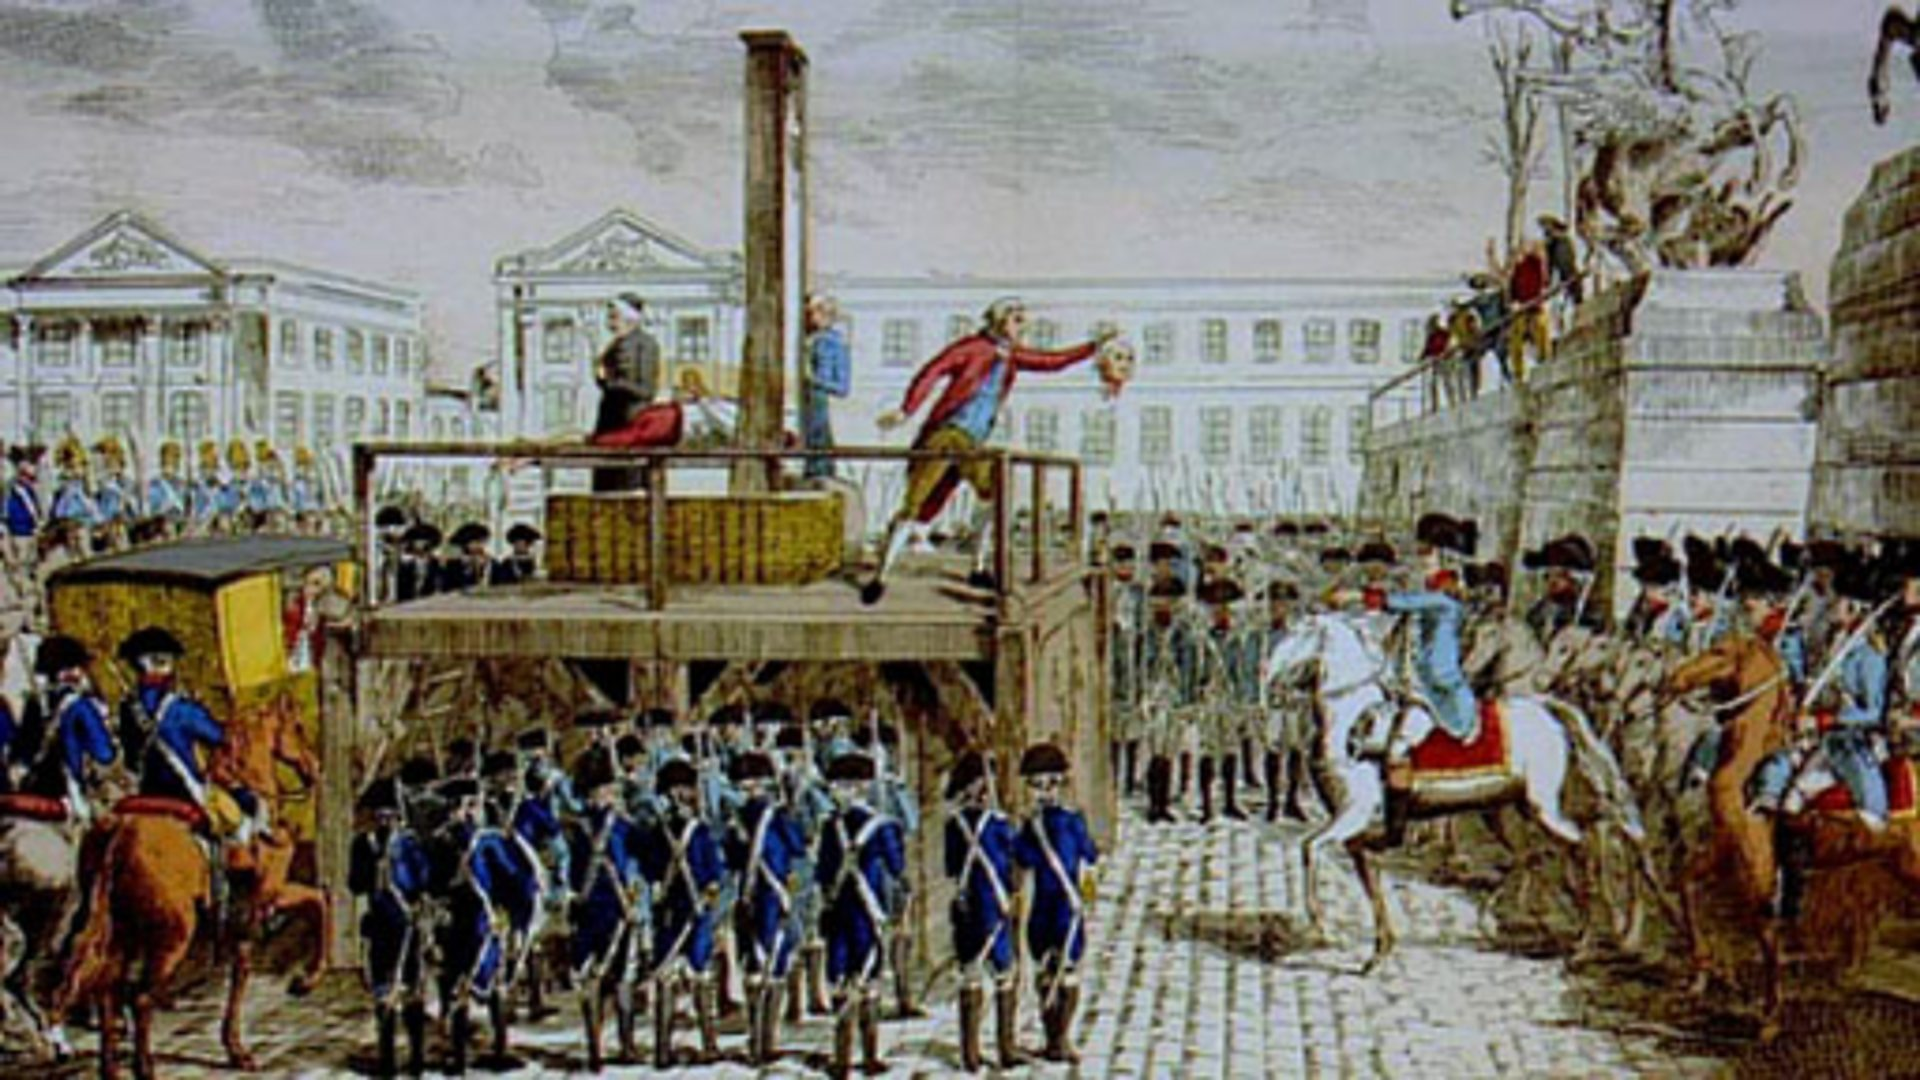 French Revolution Painting Guillotine | www.imgkid.com - The Image Kid Has It!